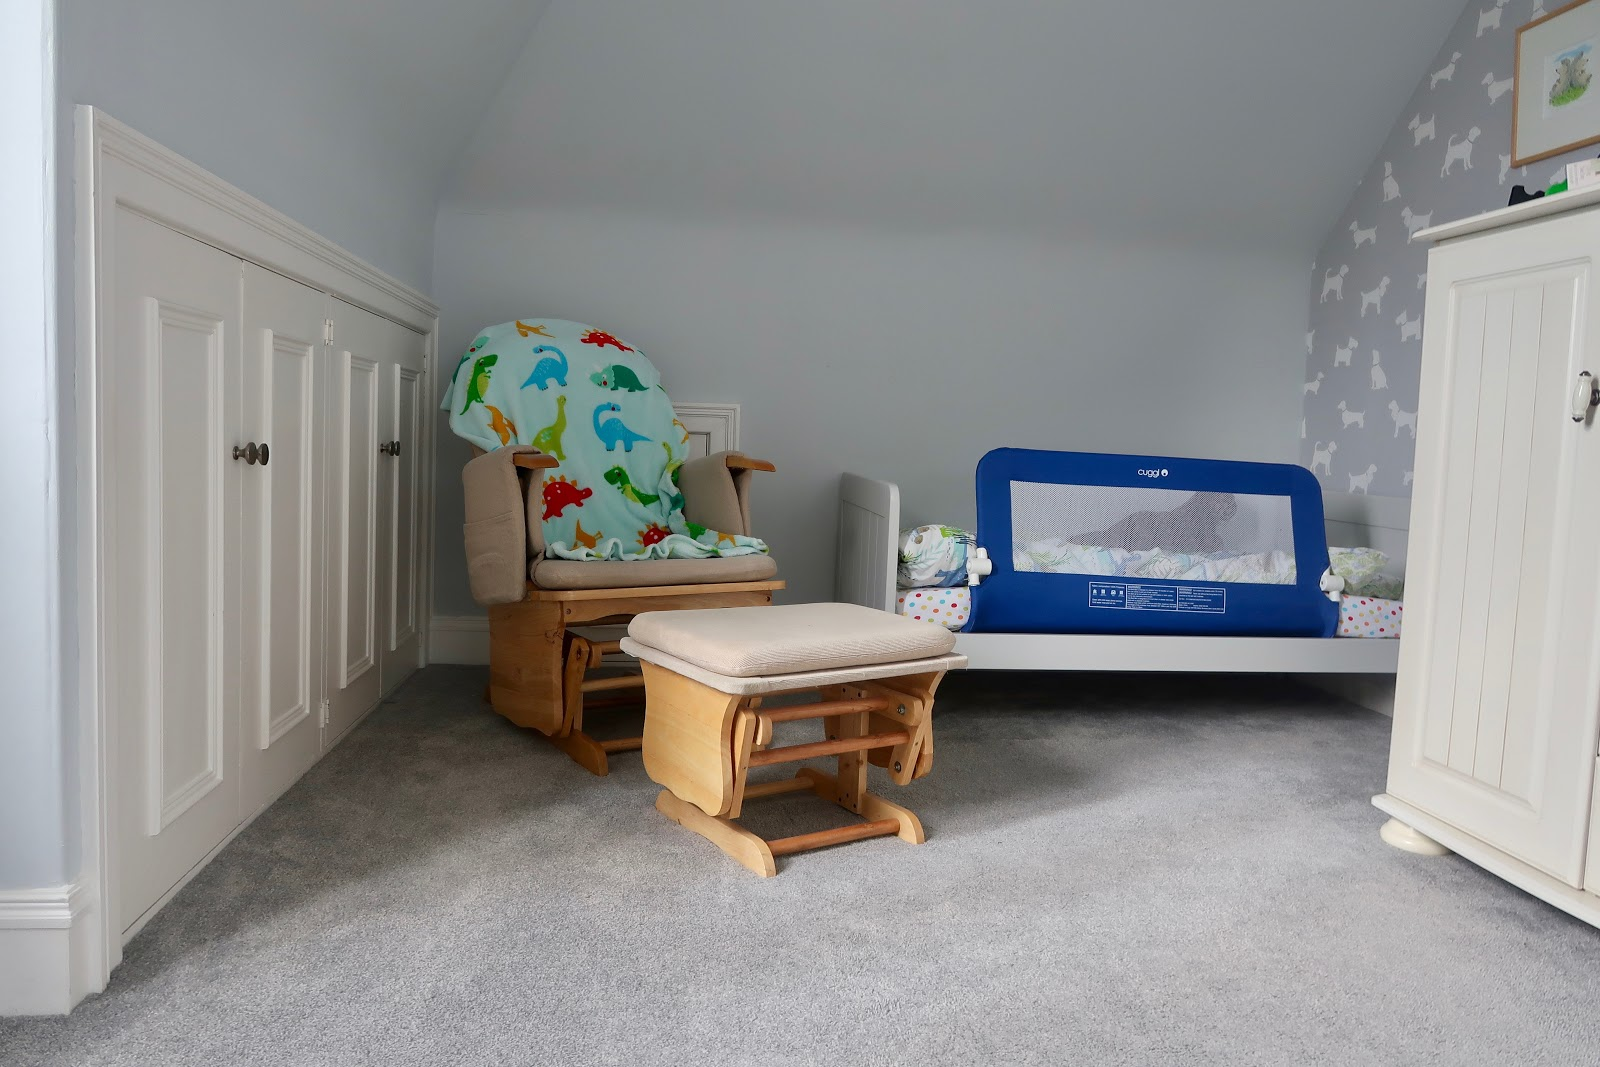 Kids sharing a bedroom